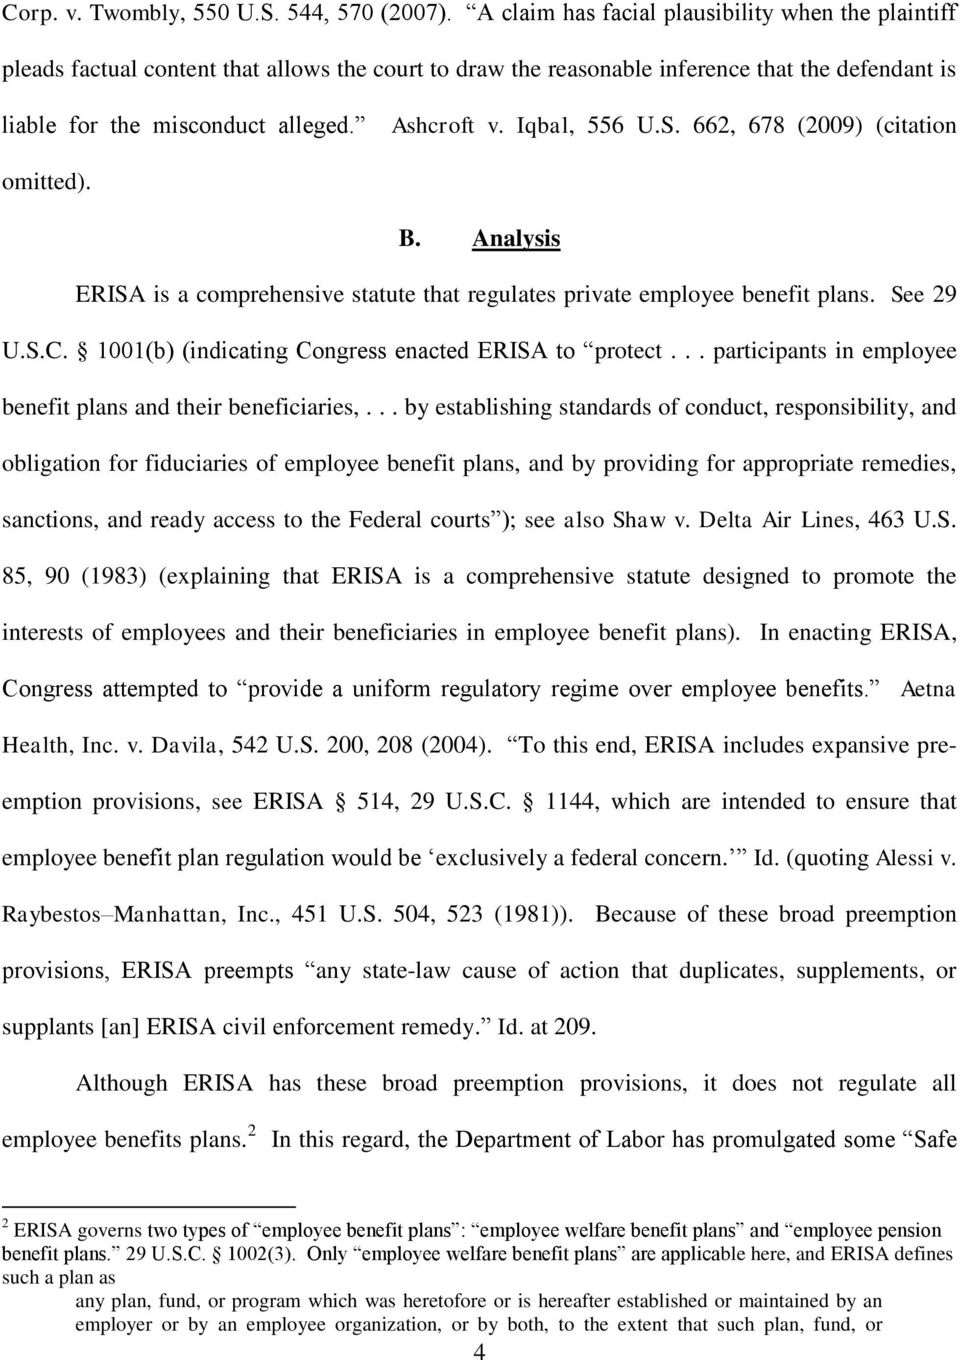 Iqbal, 556 U.S. 662, 678 (2009) (citation omitted). B. Analysis ERISA is a comprehensive statute that regulates private employee benefit plans. See 29 U.S.C.